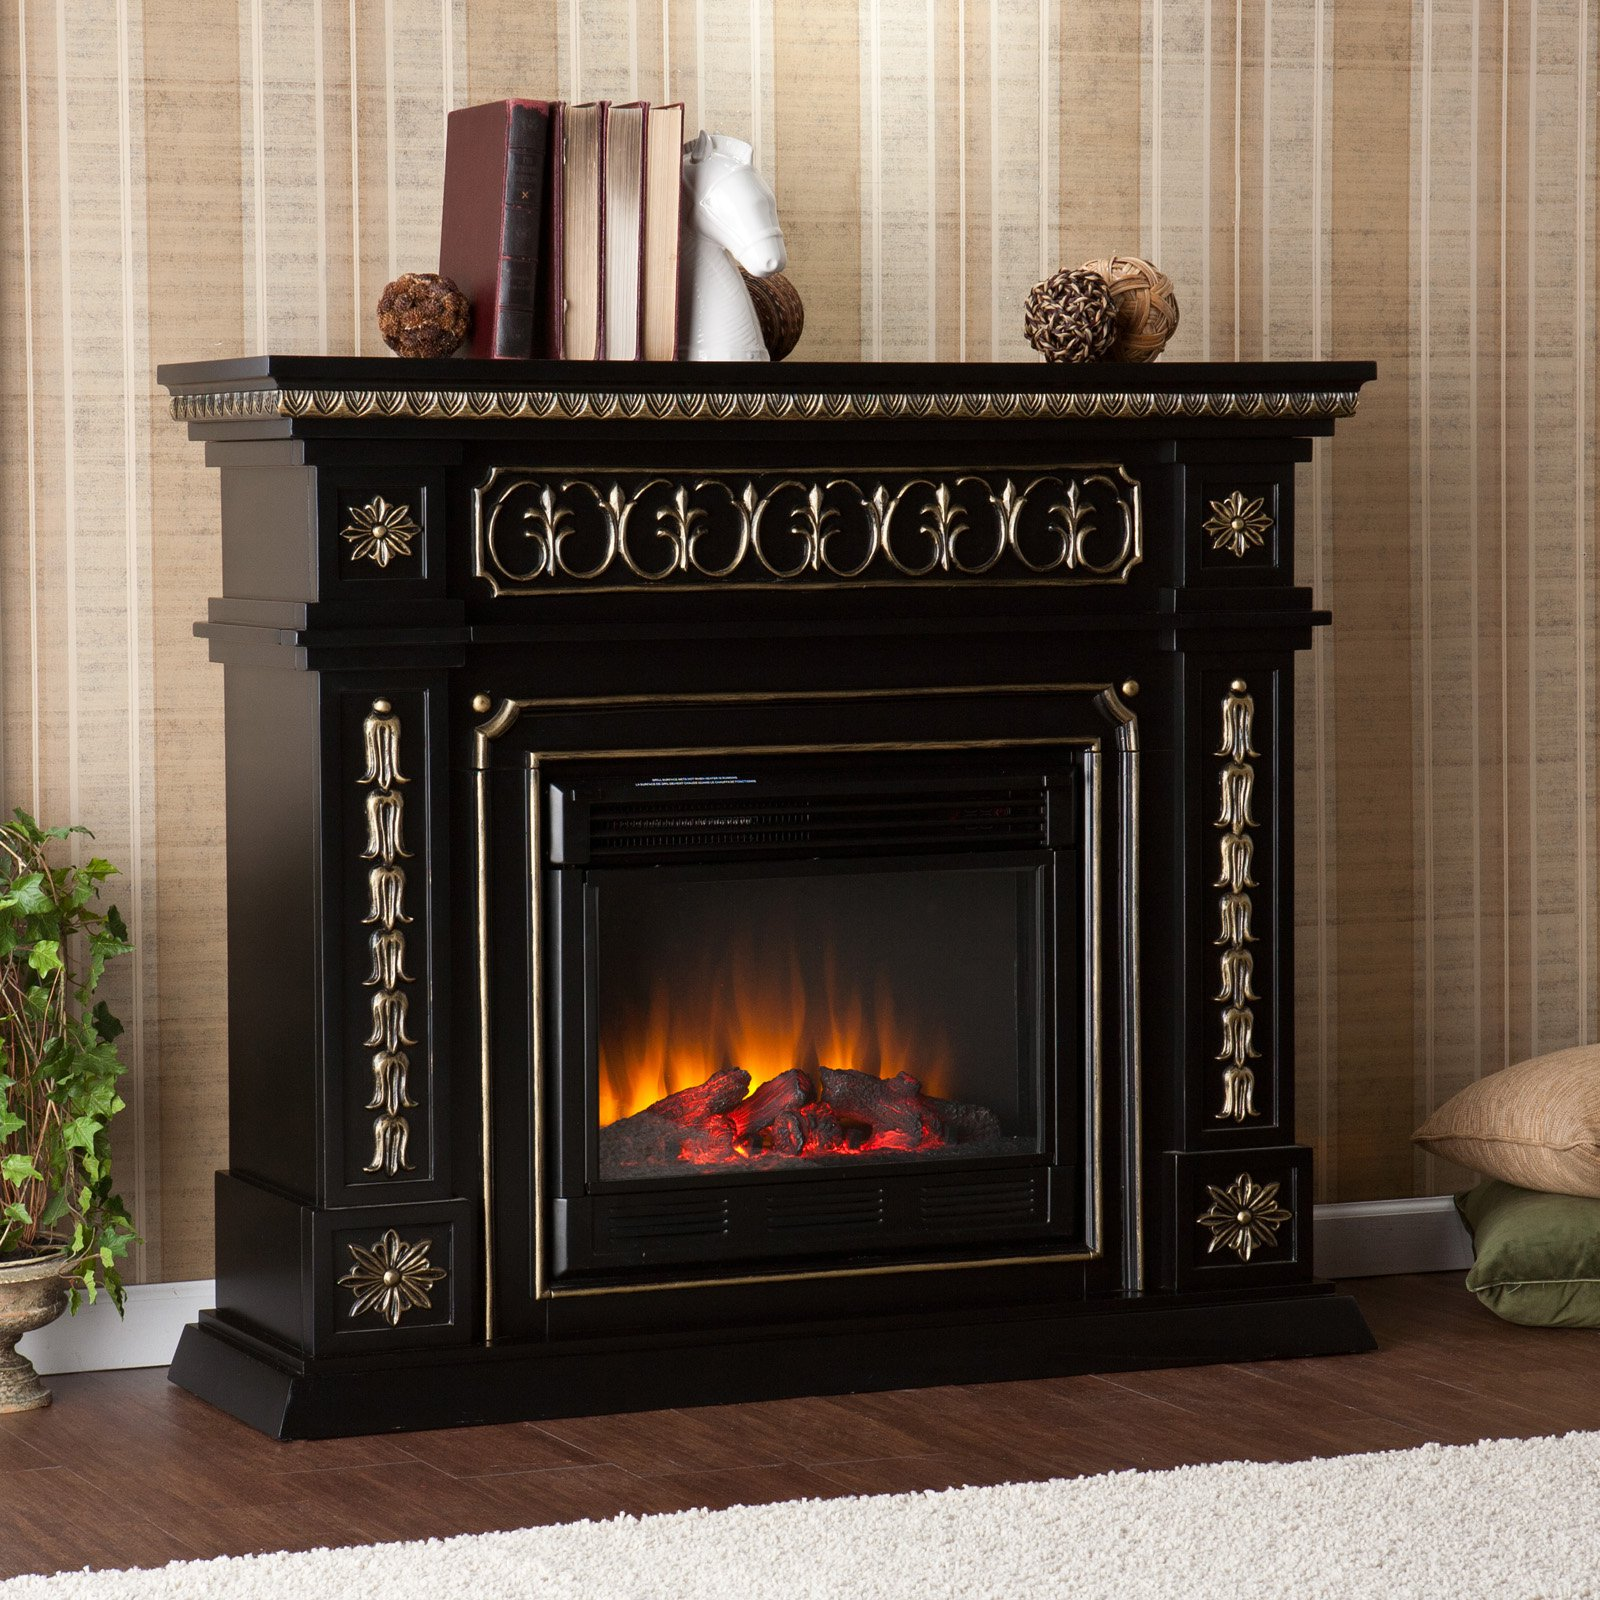 Southern Enterprises Theseus Electric Fireplace - Black